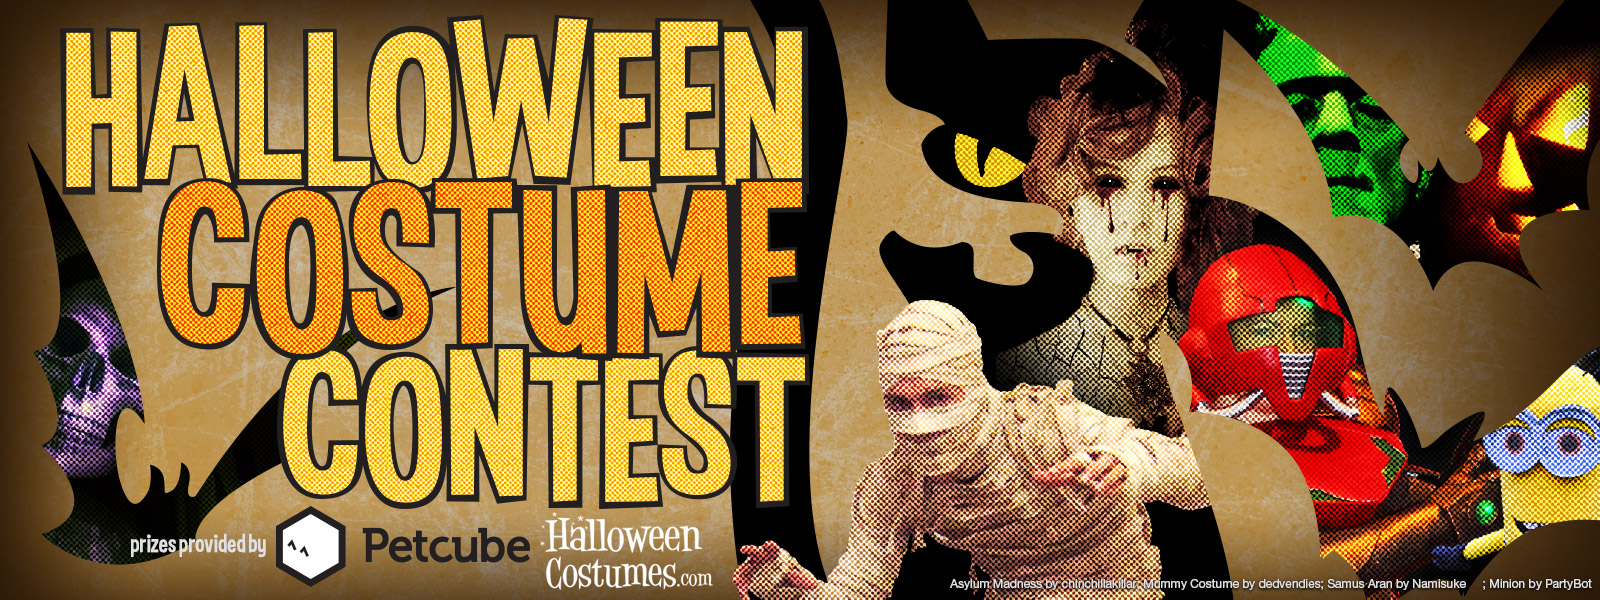 halloween costume contest 2015 - Halloween Contest Prizes